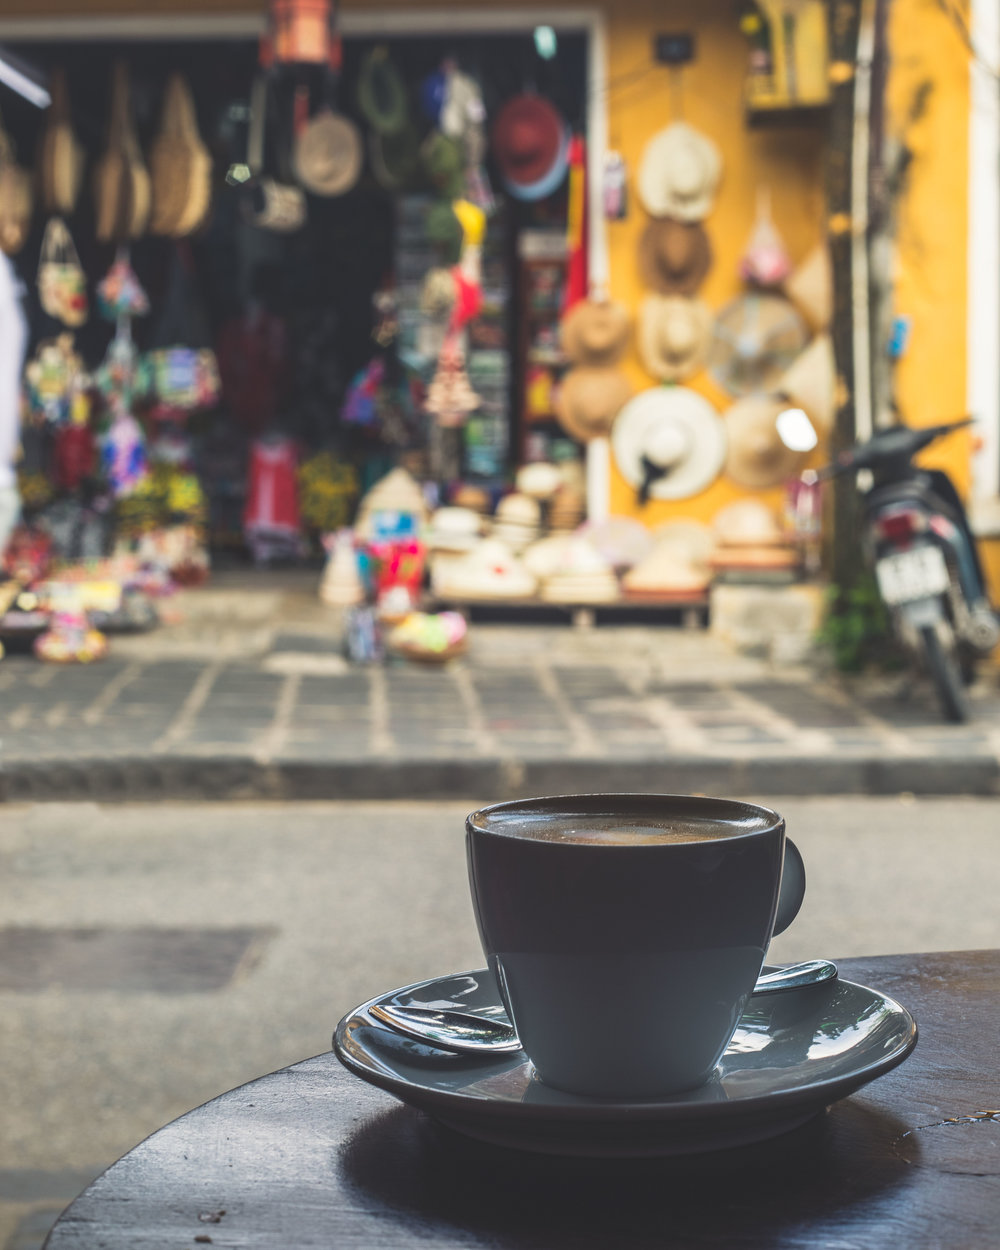 What to do in Hoi An - Coffee shops!